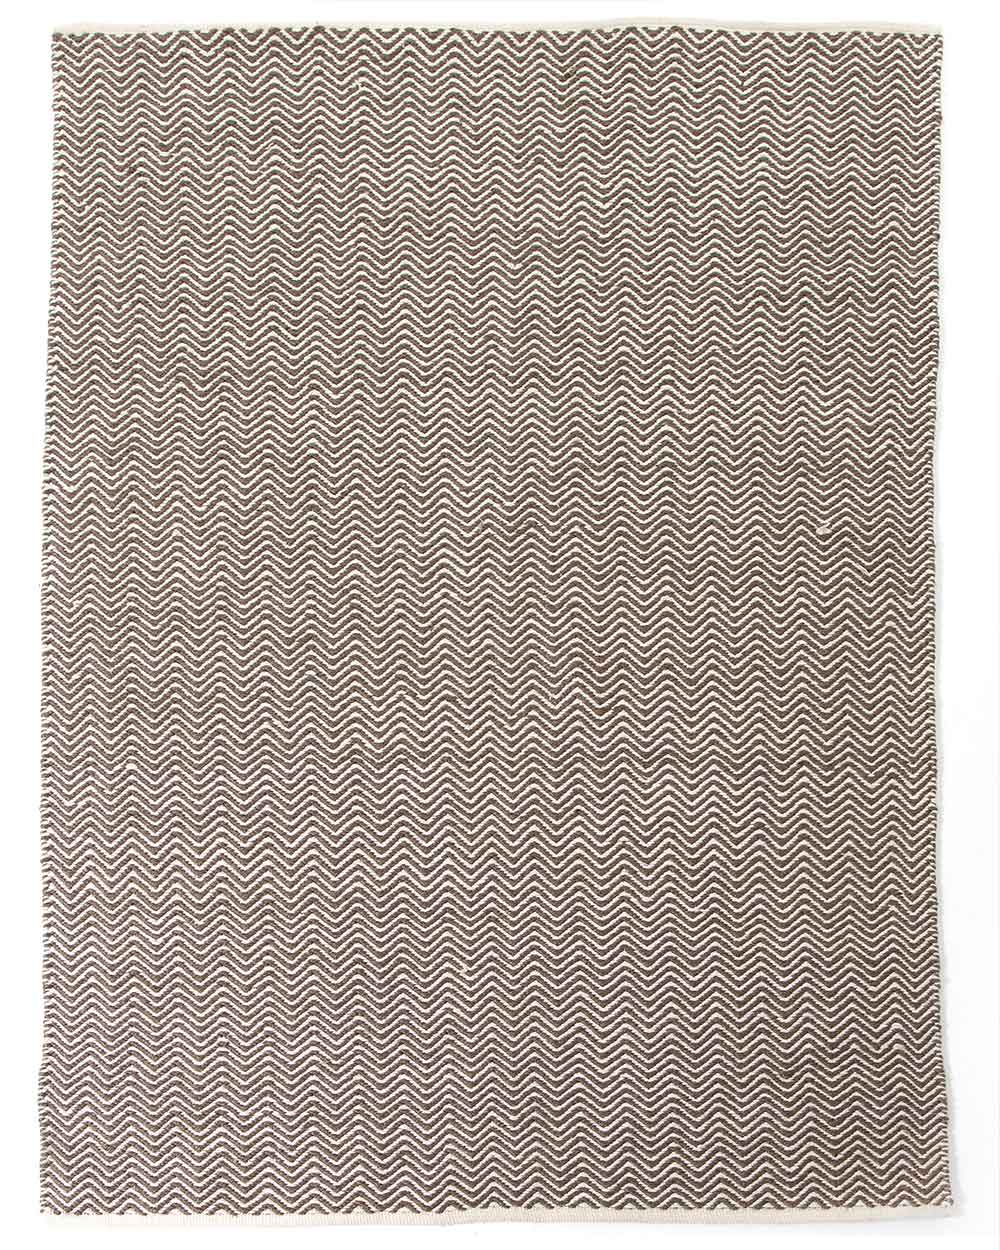 Darla light brown and cream outdoor rug Four Hands product image